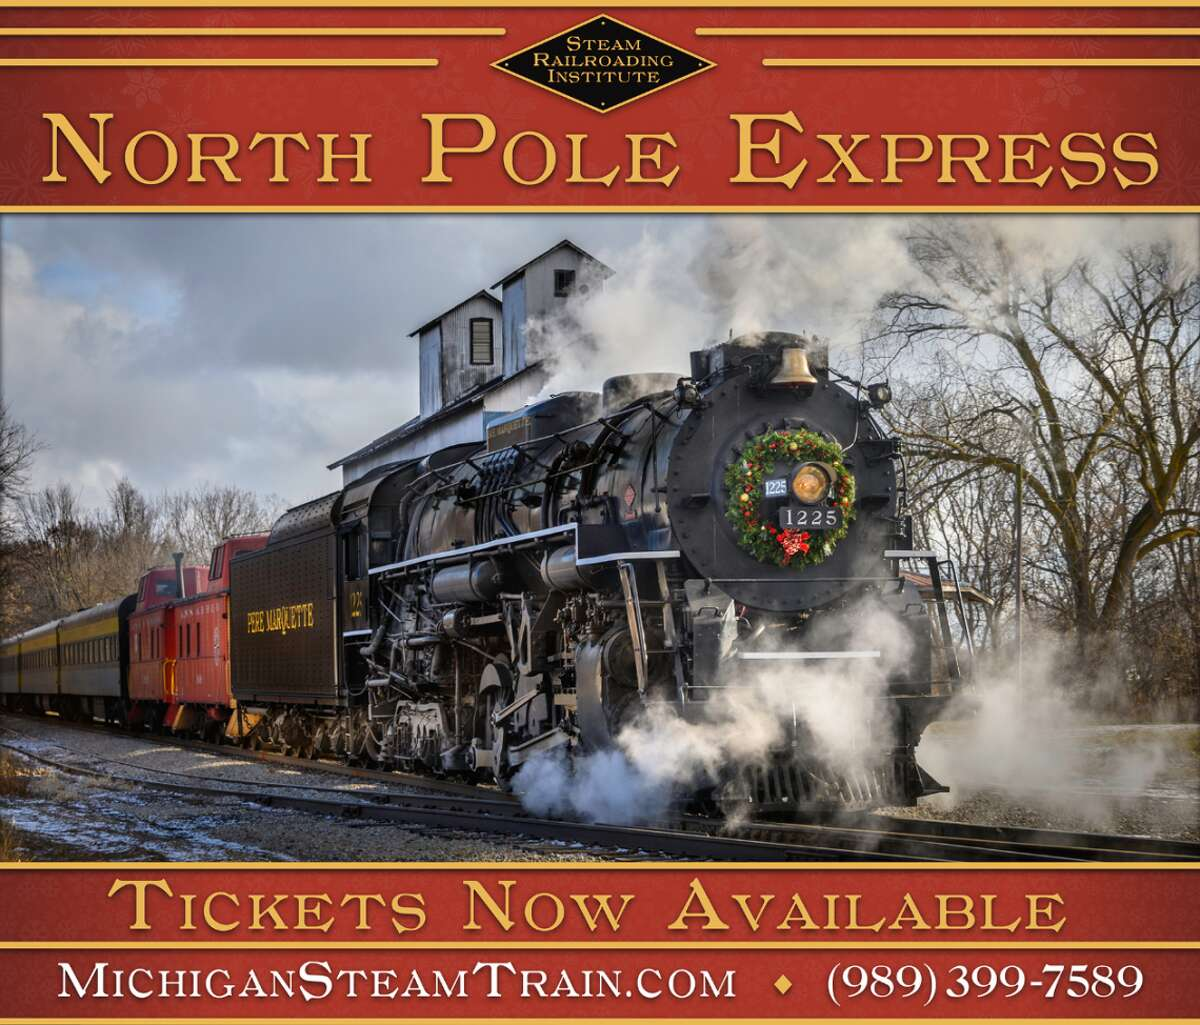 Pictured is the flyer for the North Pole Express.